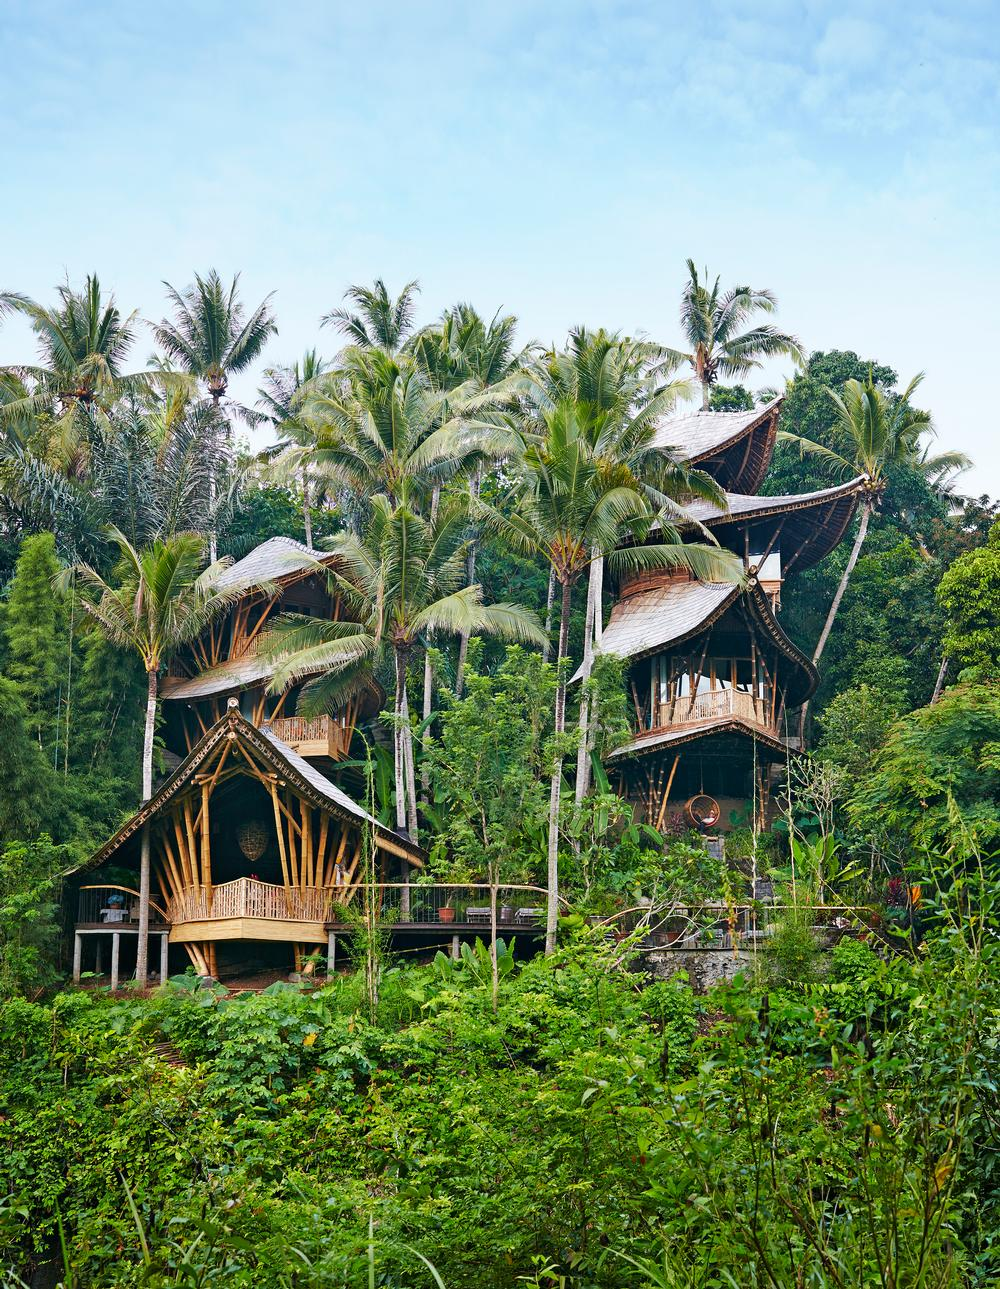 Ananda House at the Green Village, Bali is a magical and whimsical construction / Photo: IBUKU/Stephen Johnson